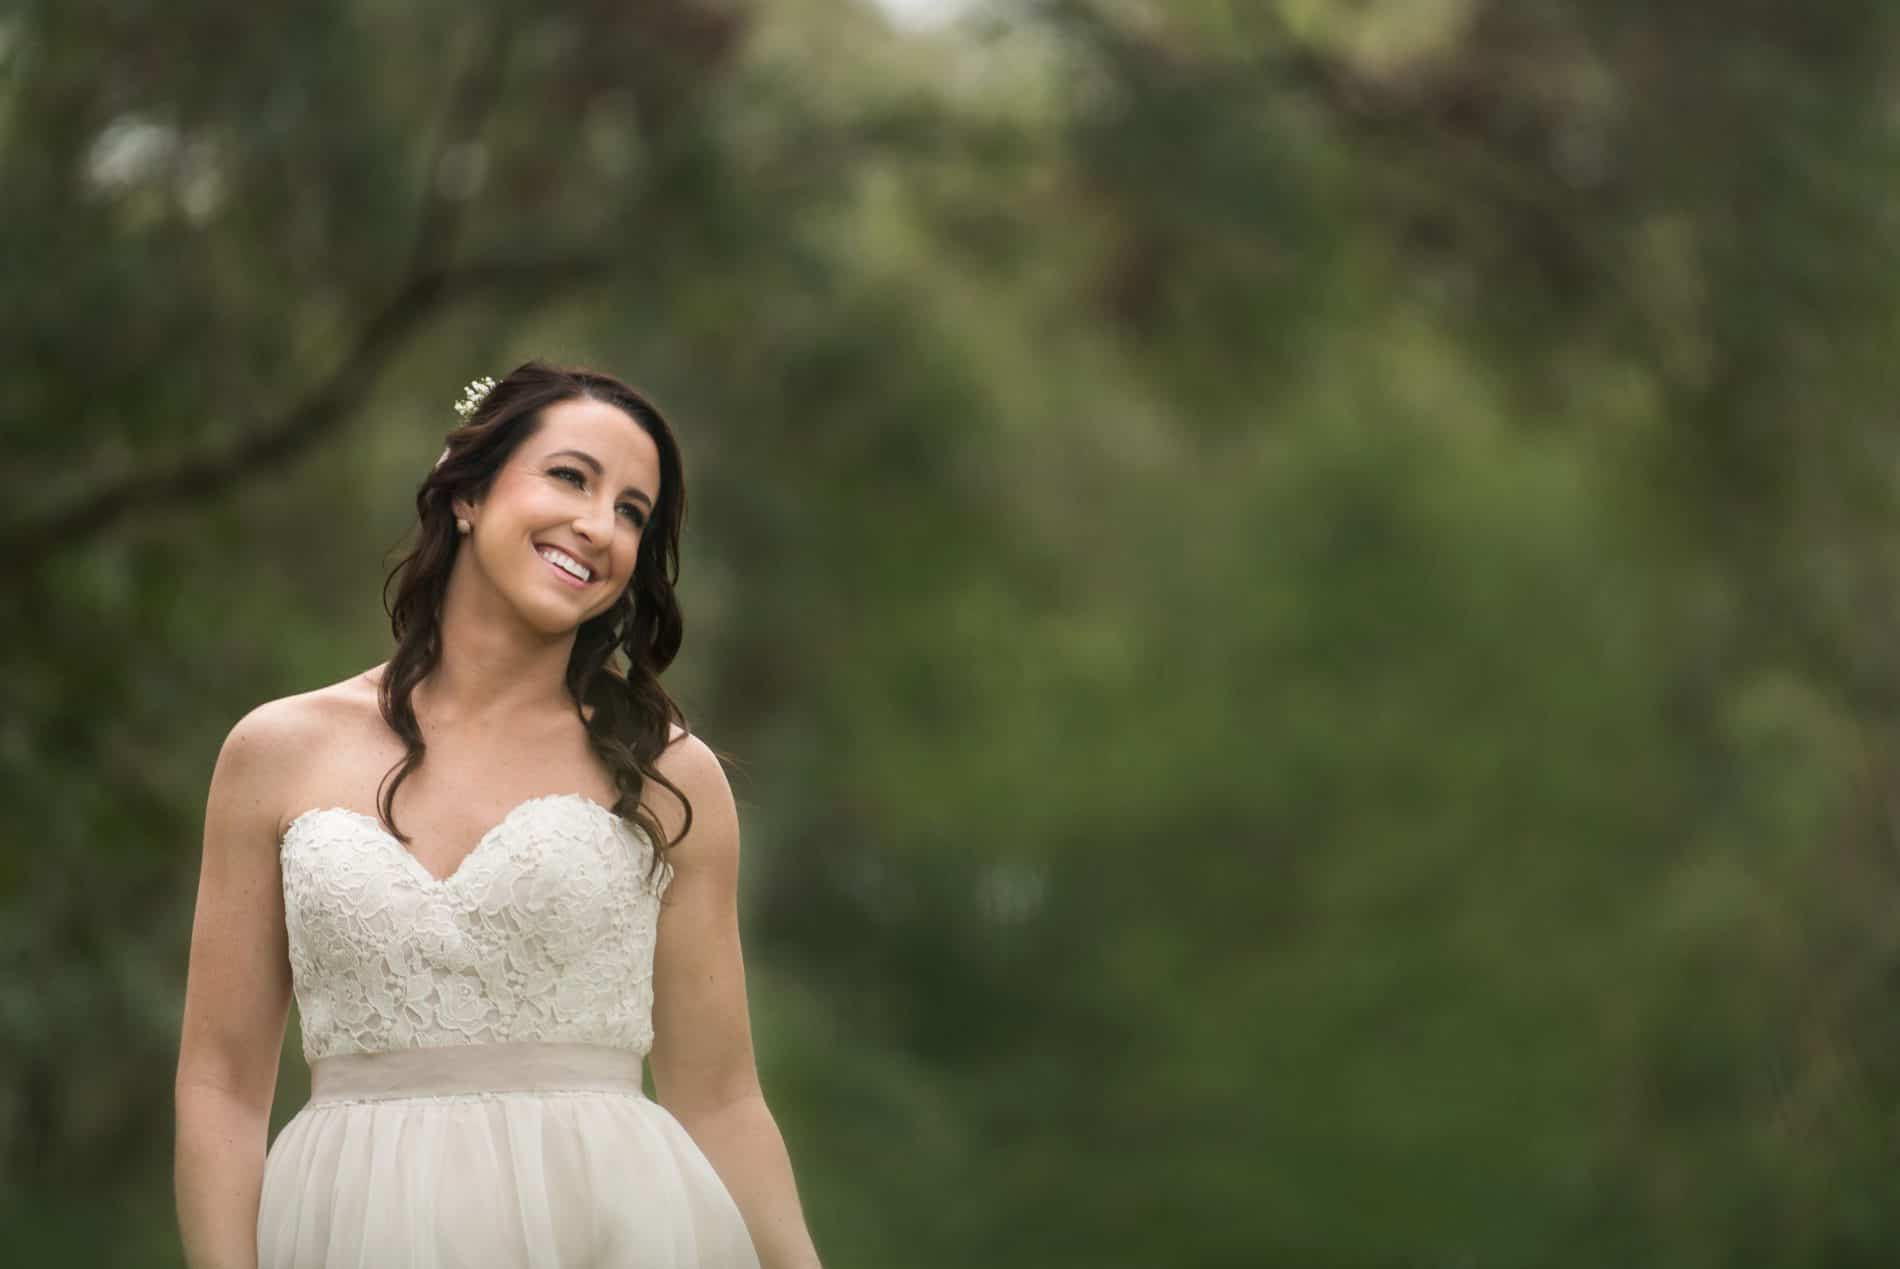 A Bride Posing among Harmony Gardens Fern Covered Grounds